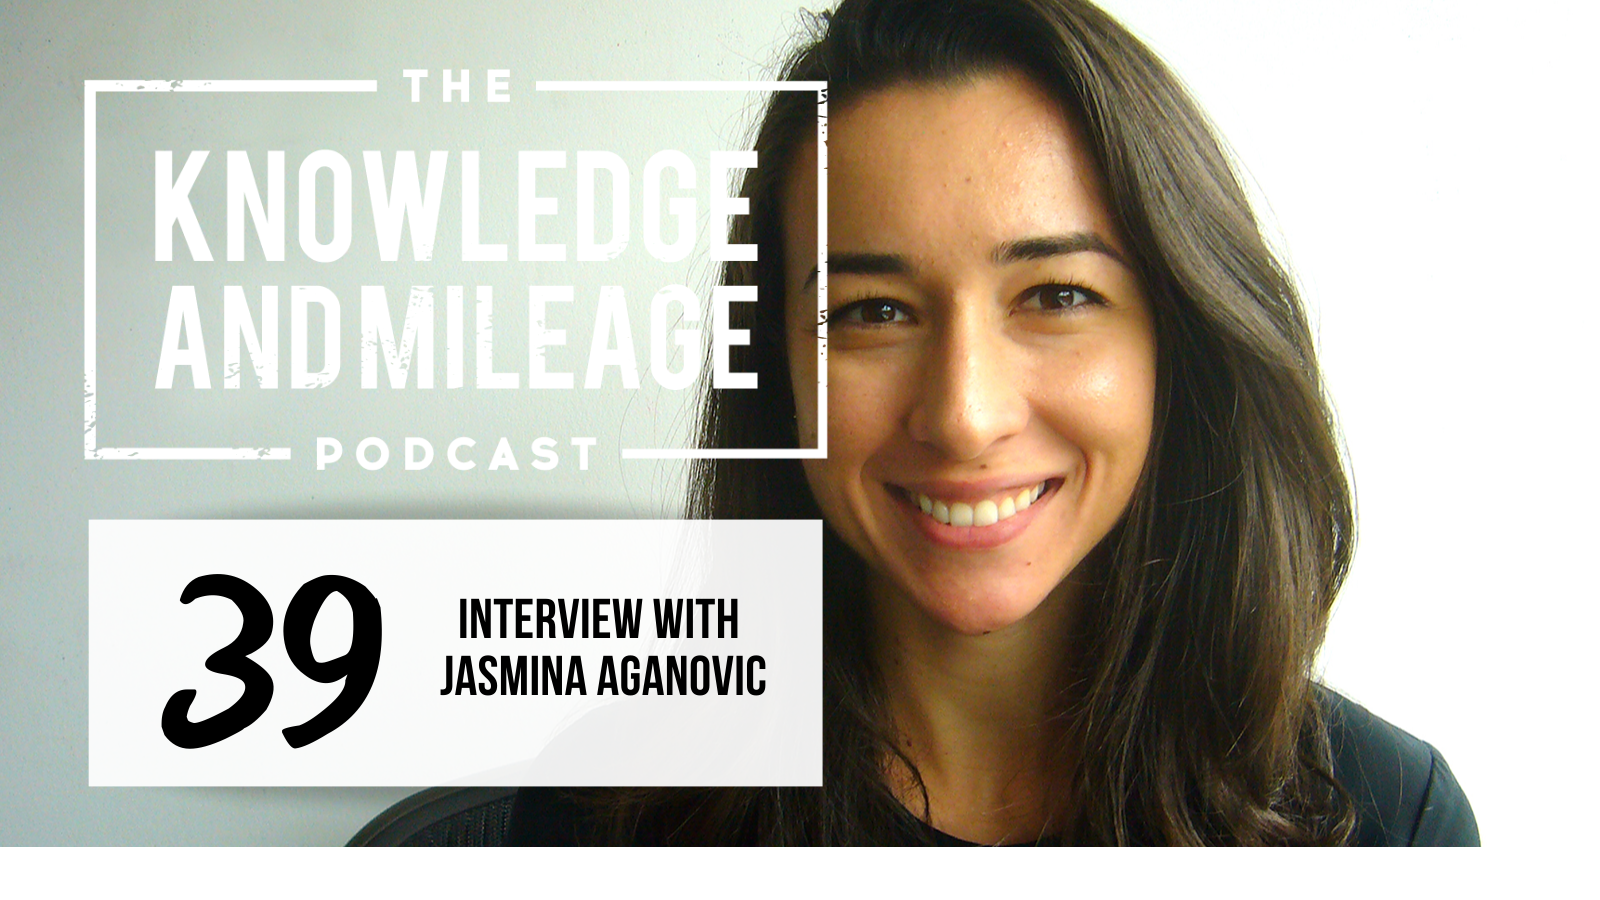 EP 39: Let's Talk Dirty: Interview with Jasmina Aganovic